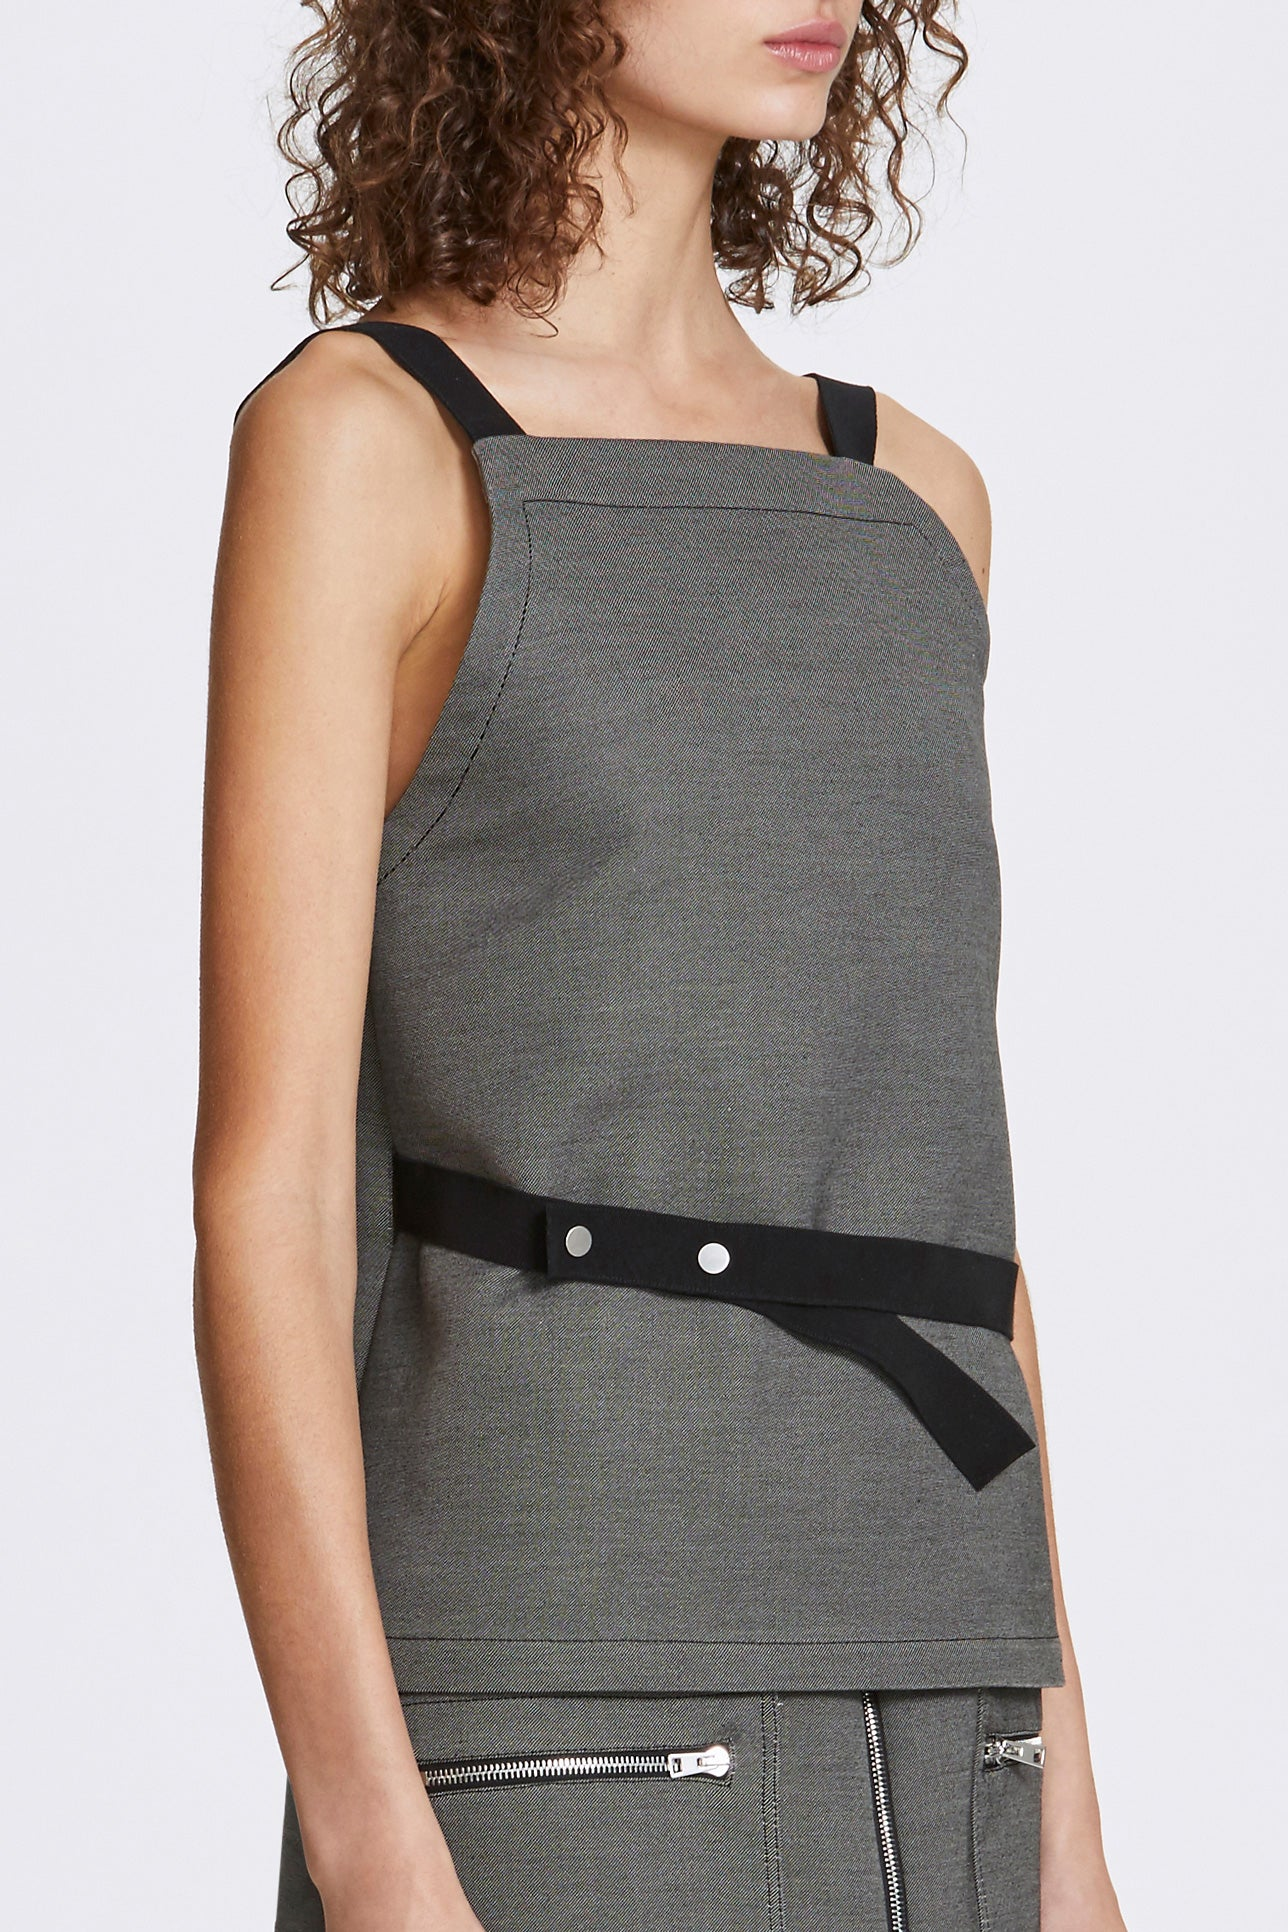 Bi-stud wrap top - Double-faced cotton twill - Grey - Resortwear top - Her Line